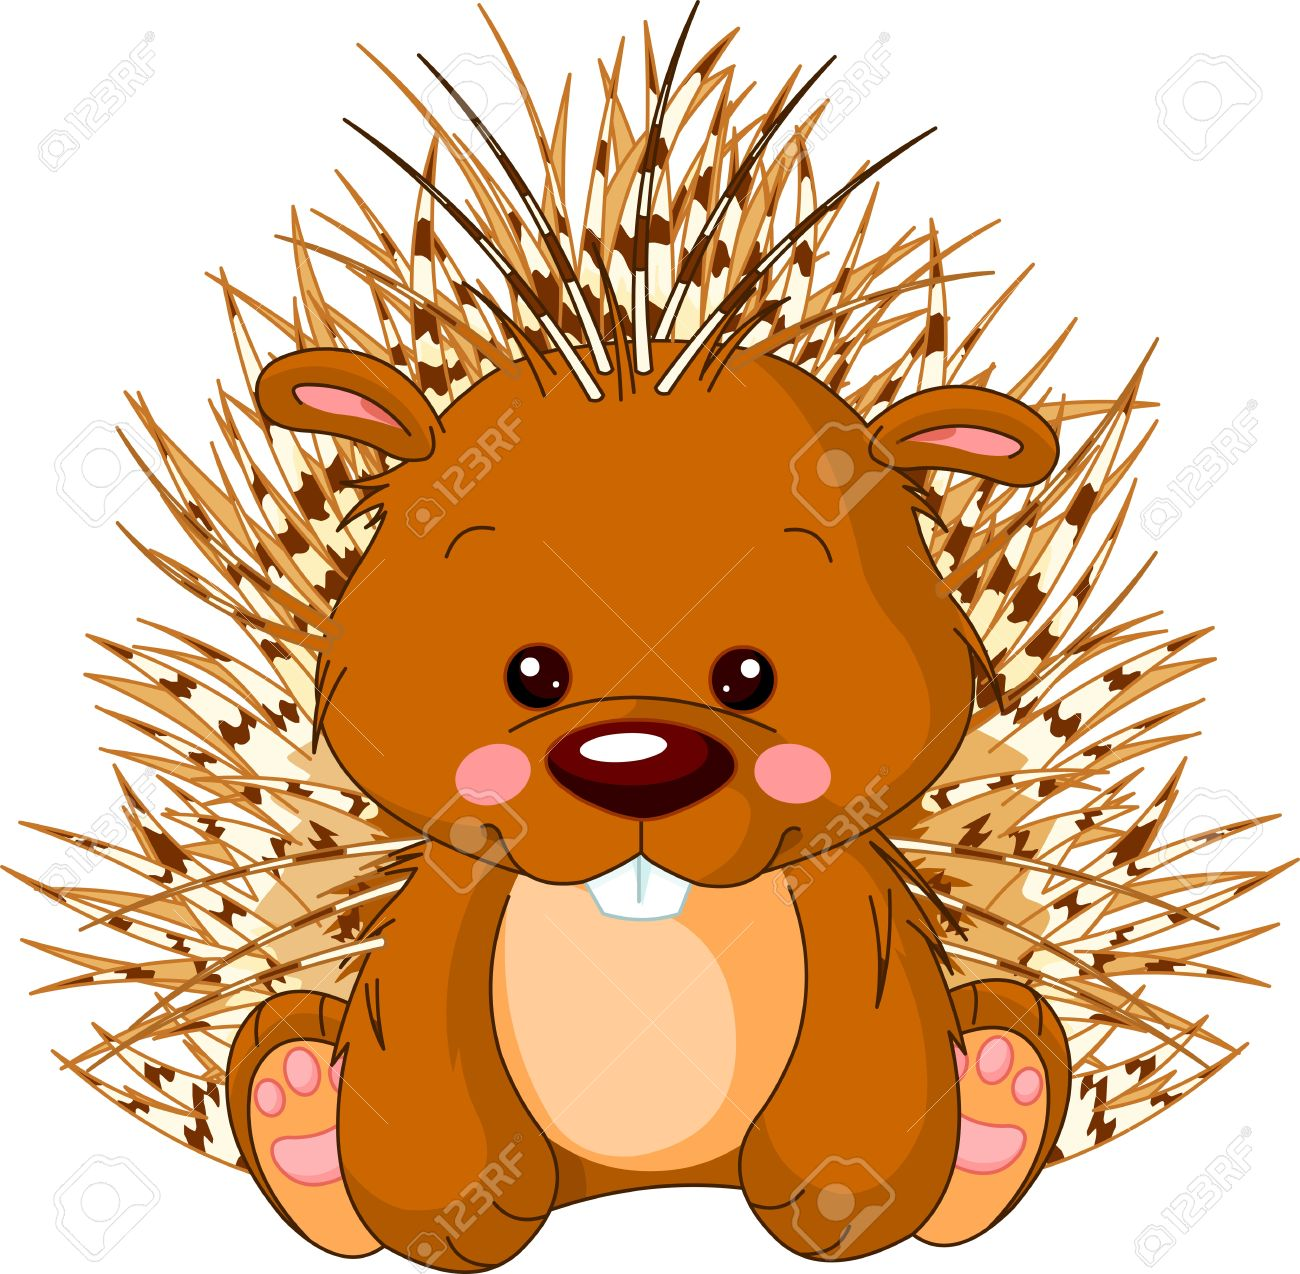 fun zoo illustration of cute porcupine royalty free cliparts rh 123rf com tree porcupine clipart porcupine image clipart